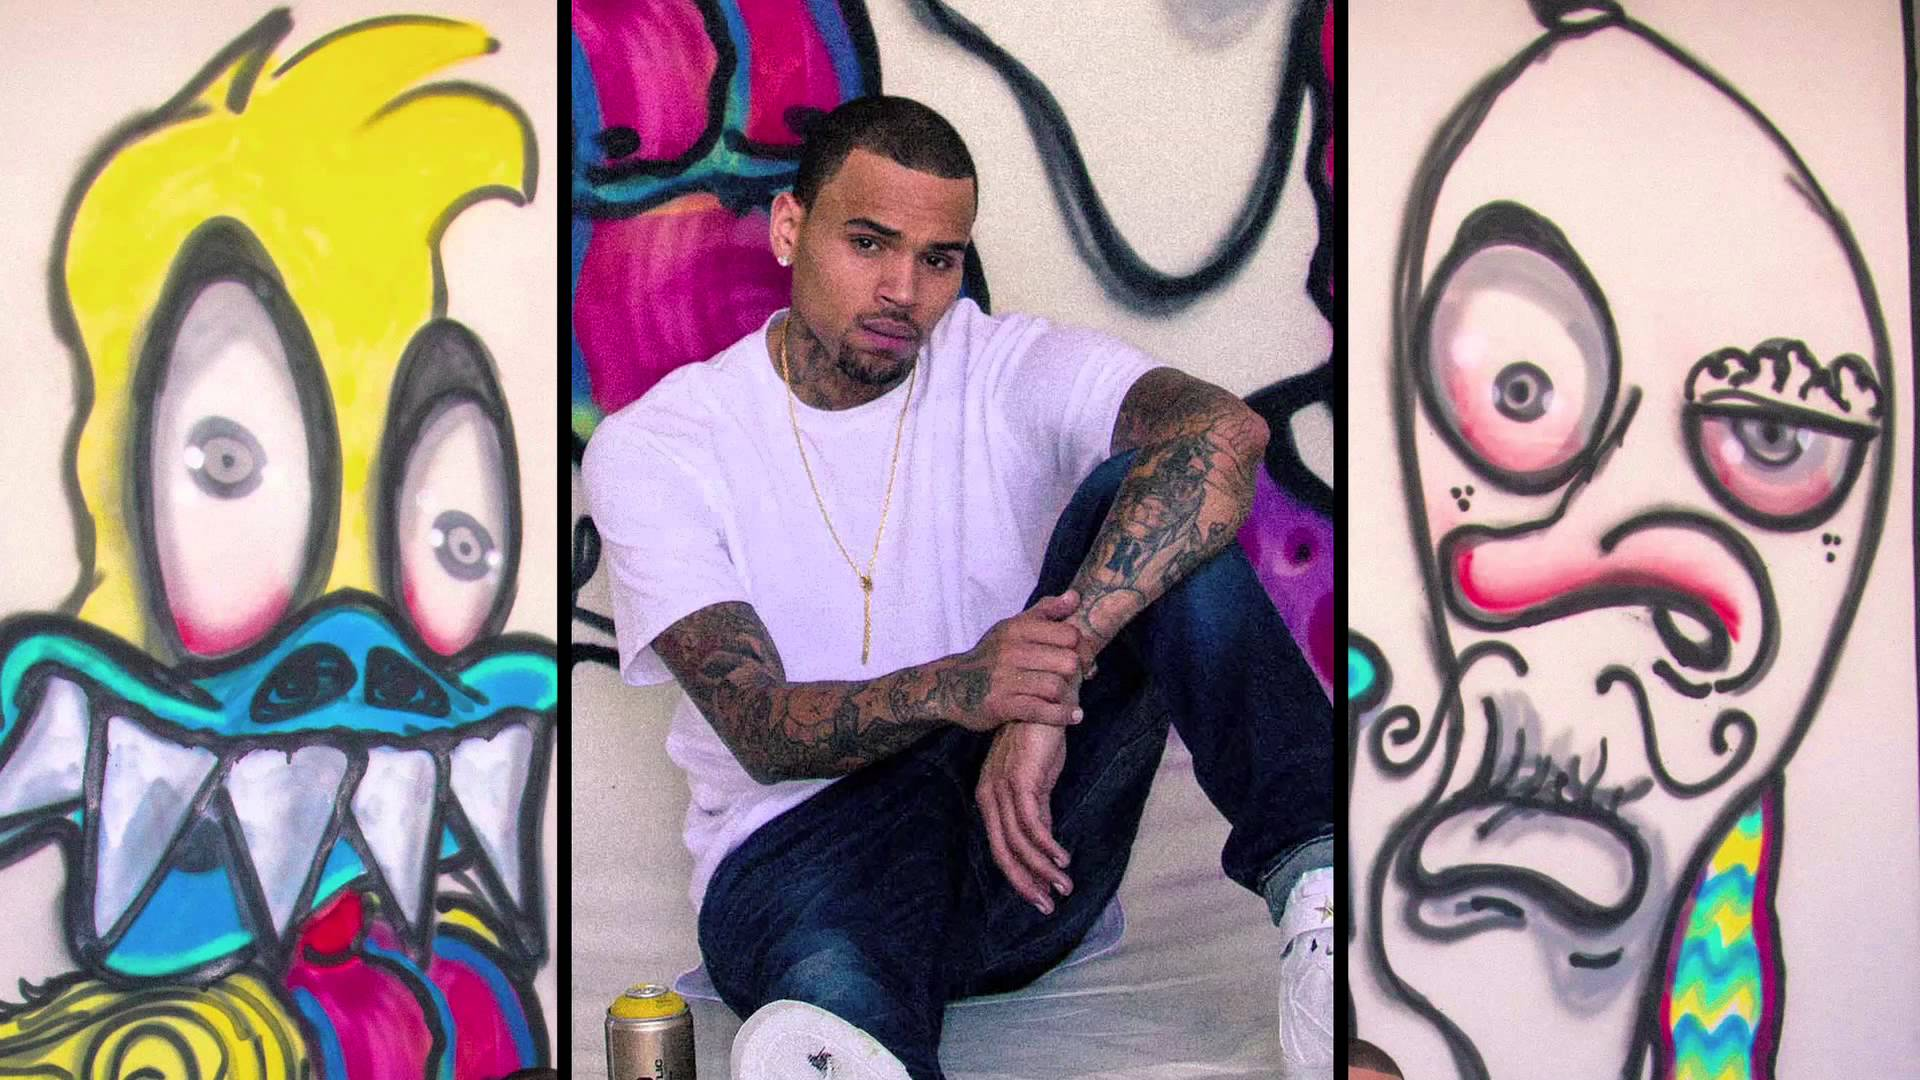 pictures of chris brown